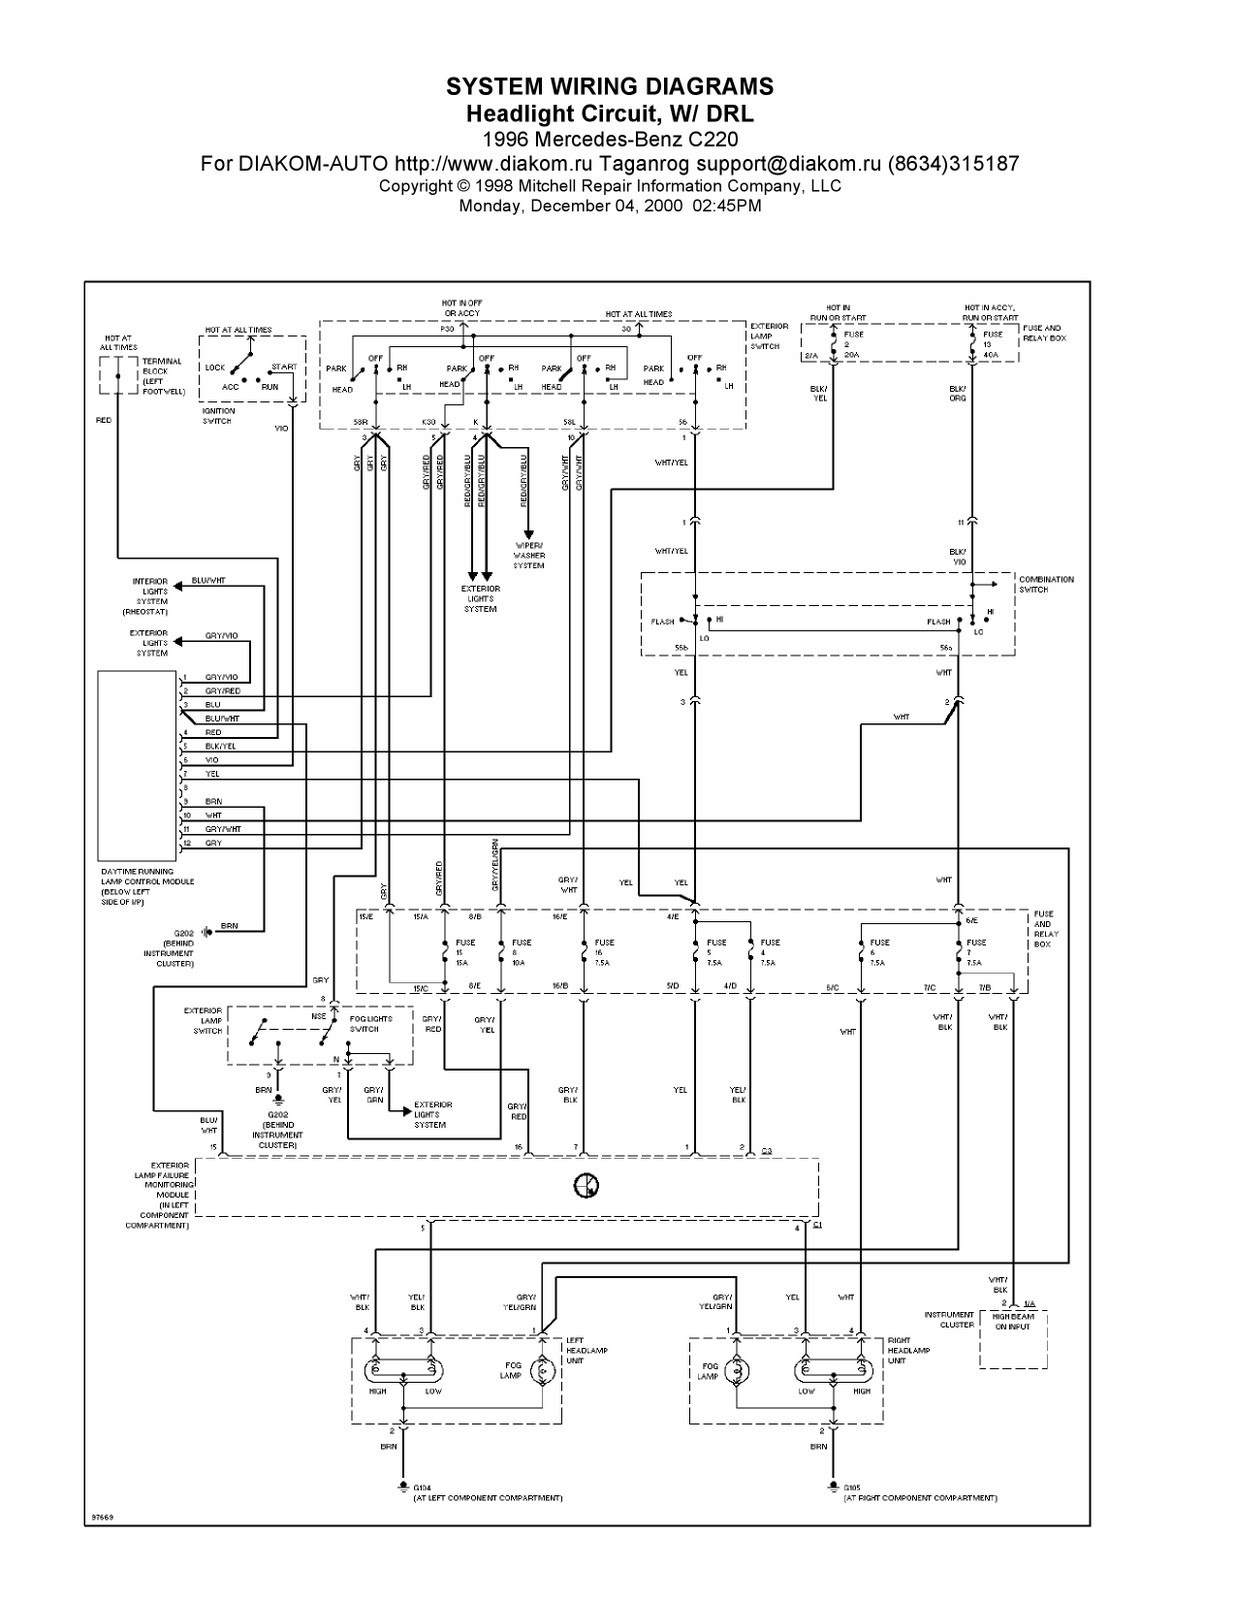 Electrical Wiring Diagram Mercedes